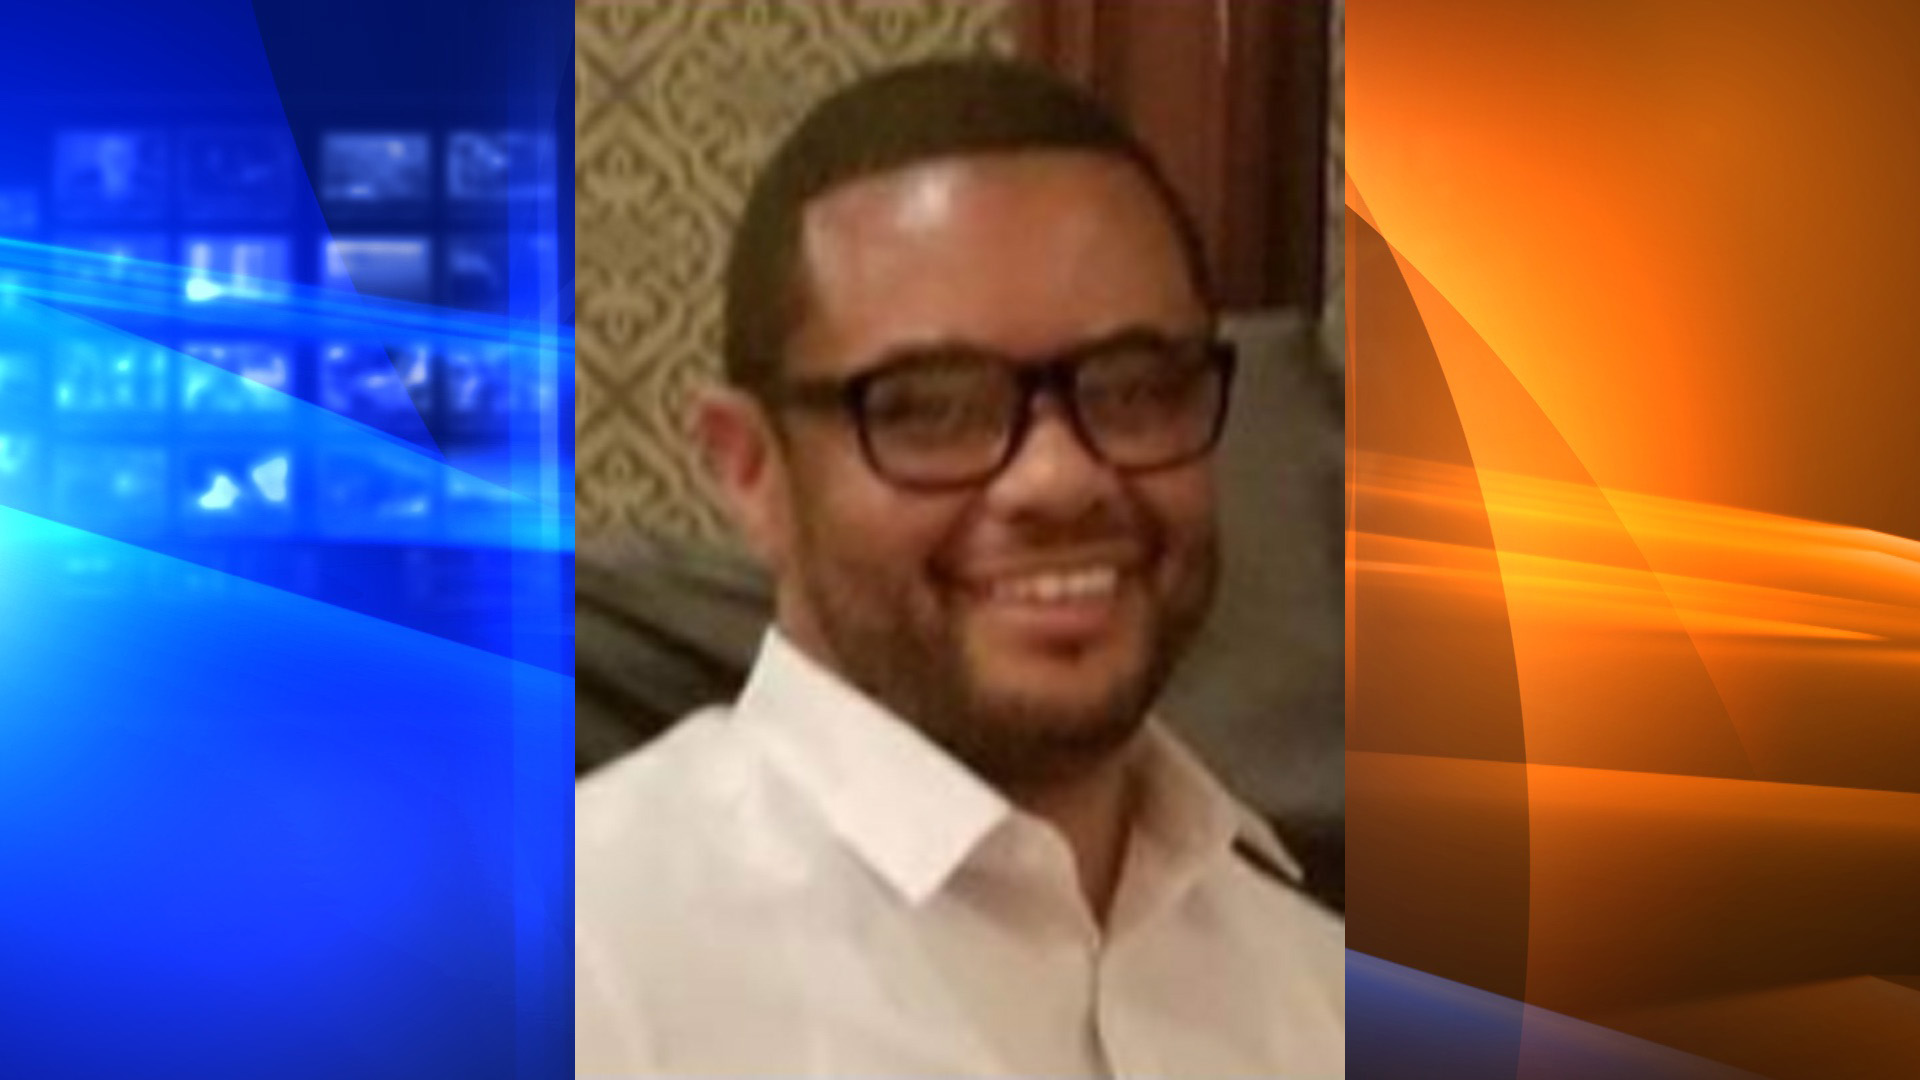 Baltimore police released this photo of Detectives Sean Suiter as they announced a reward in the case.